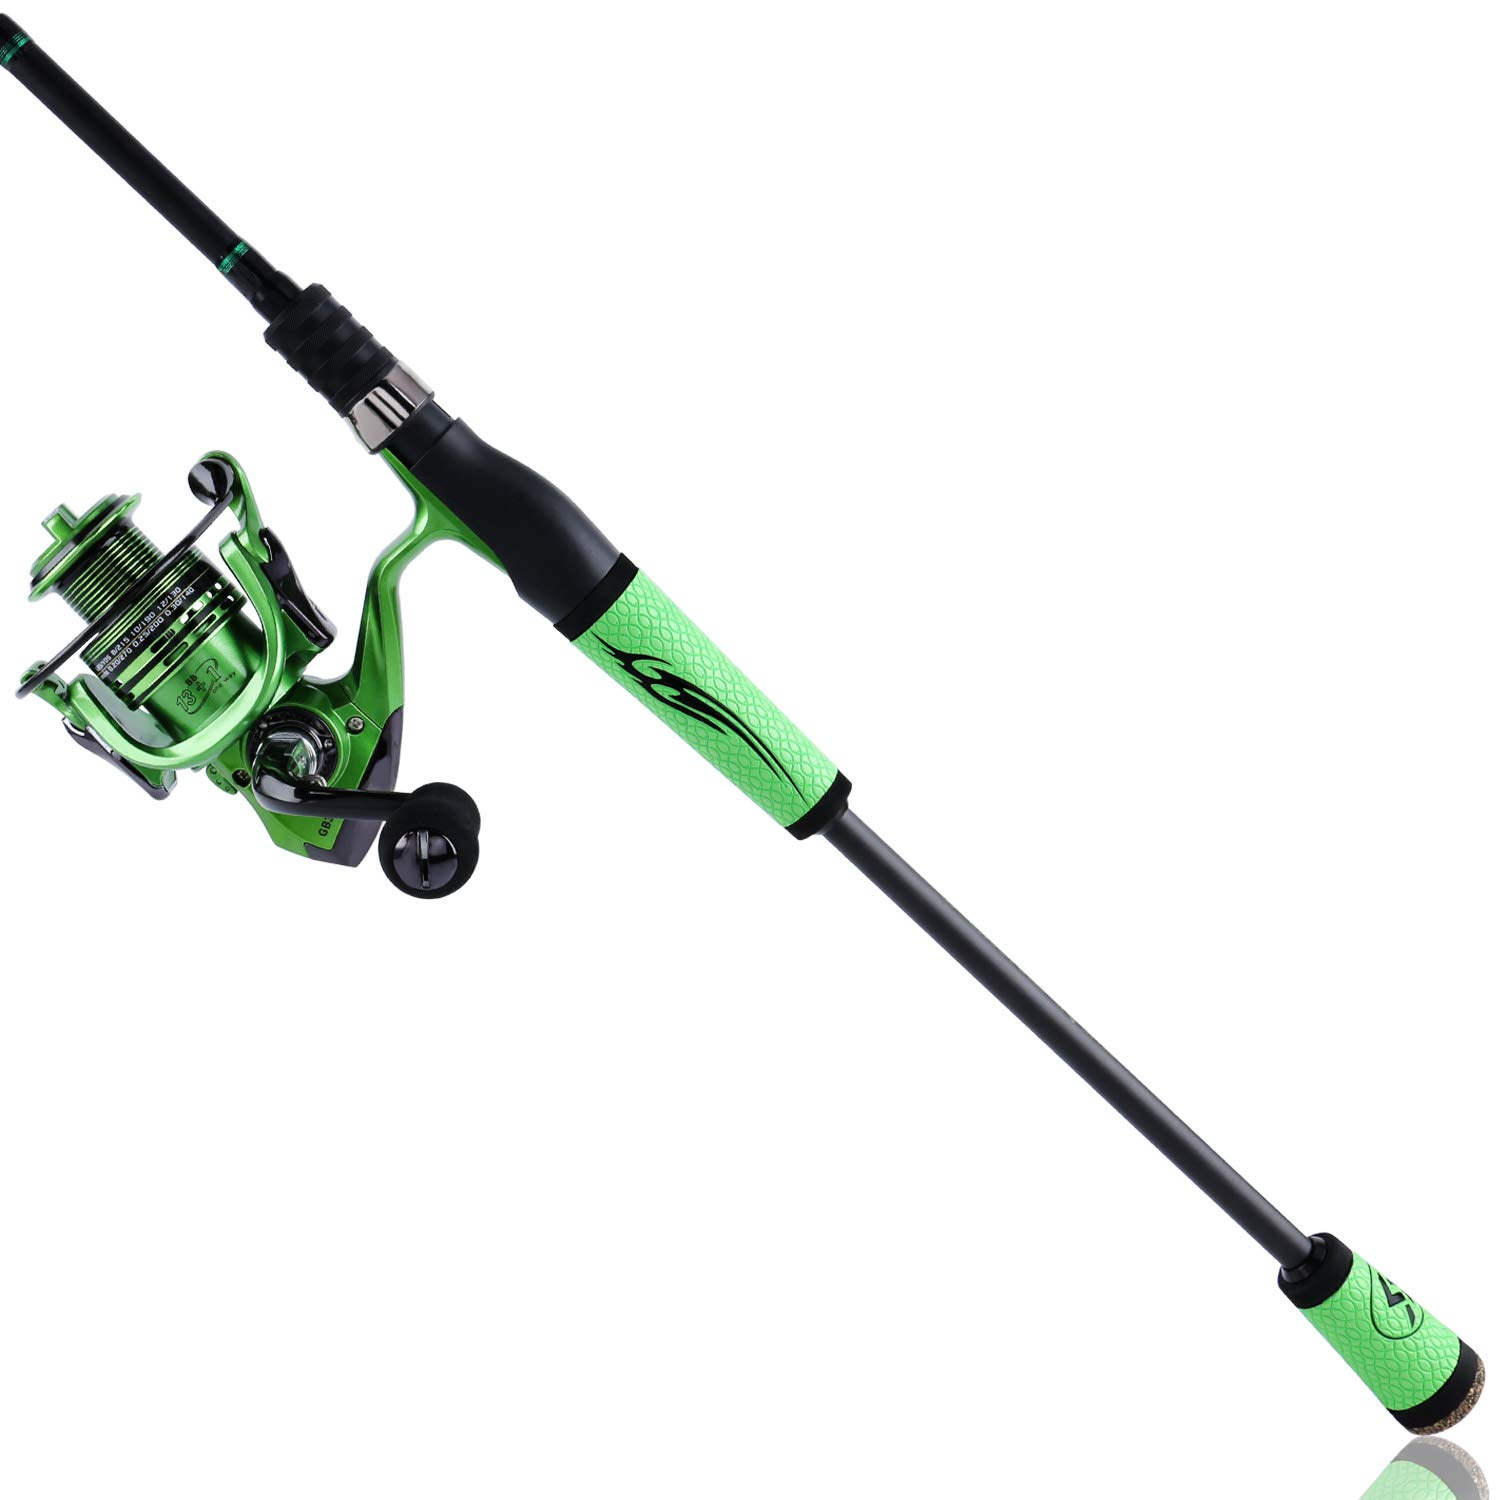 Sougayilang Speed Bass Fishing Rods, Porable Light Weight High Carbon 4 Pc Blanks for Travel Freshwater Fishing-Spinning Casting